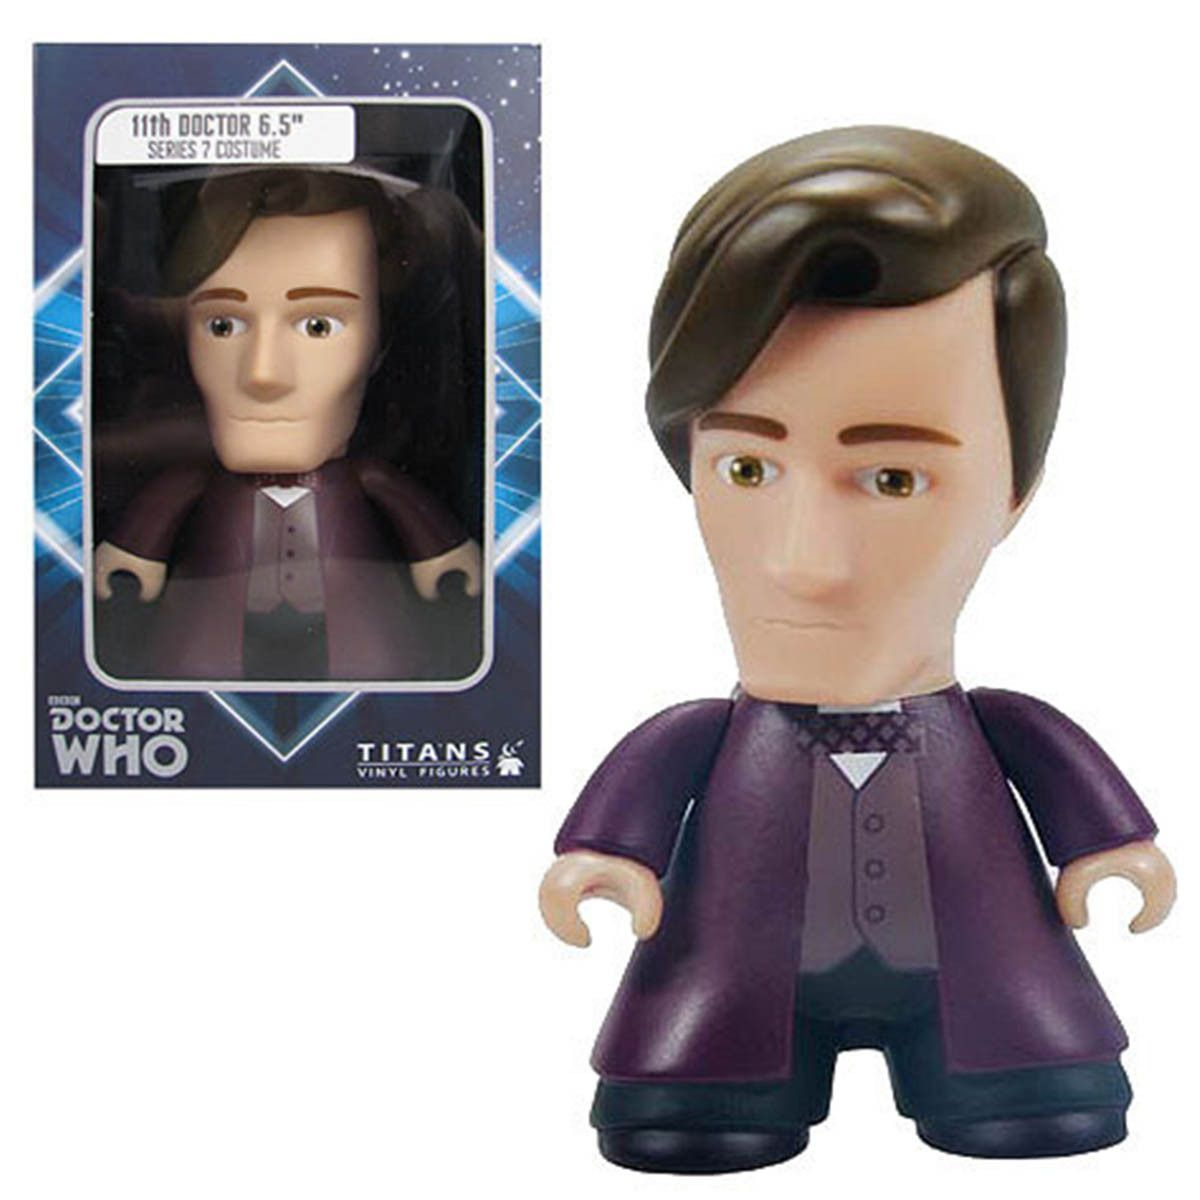 Titans Vinyl Figures Doctor Who 11th Doctor Figures by the Unit!